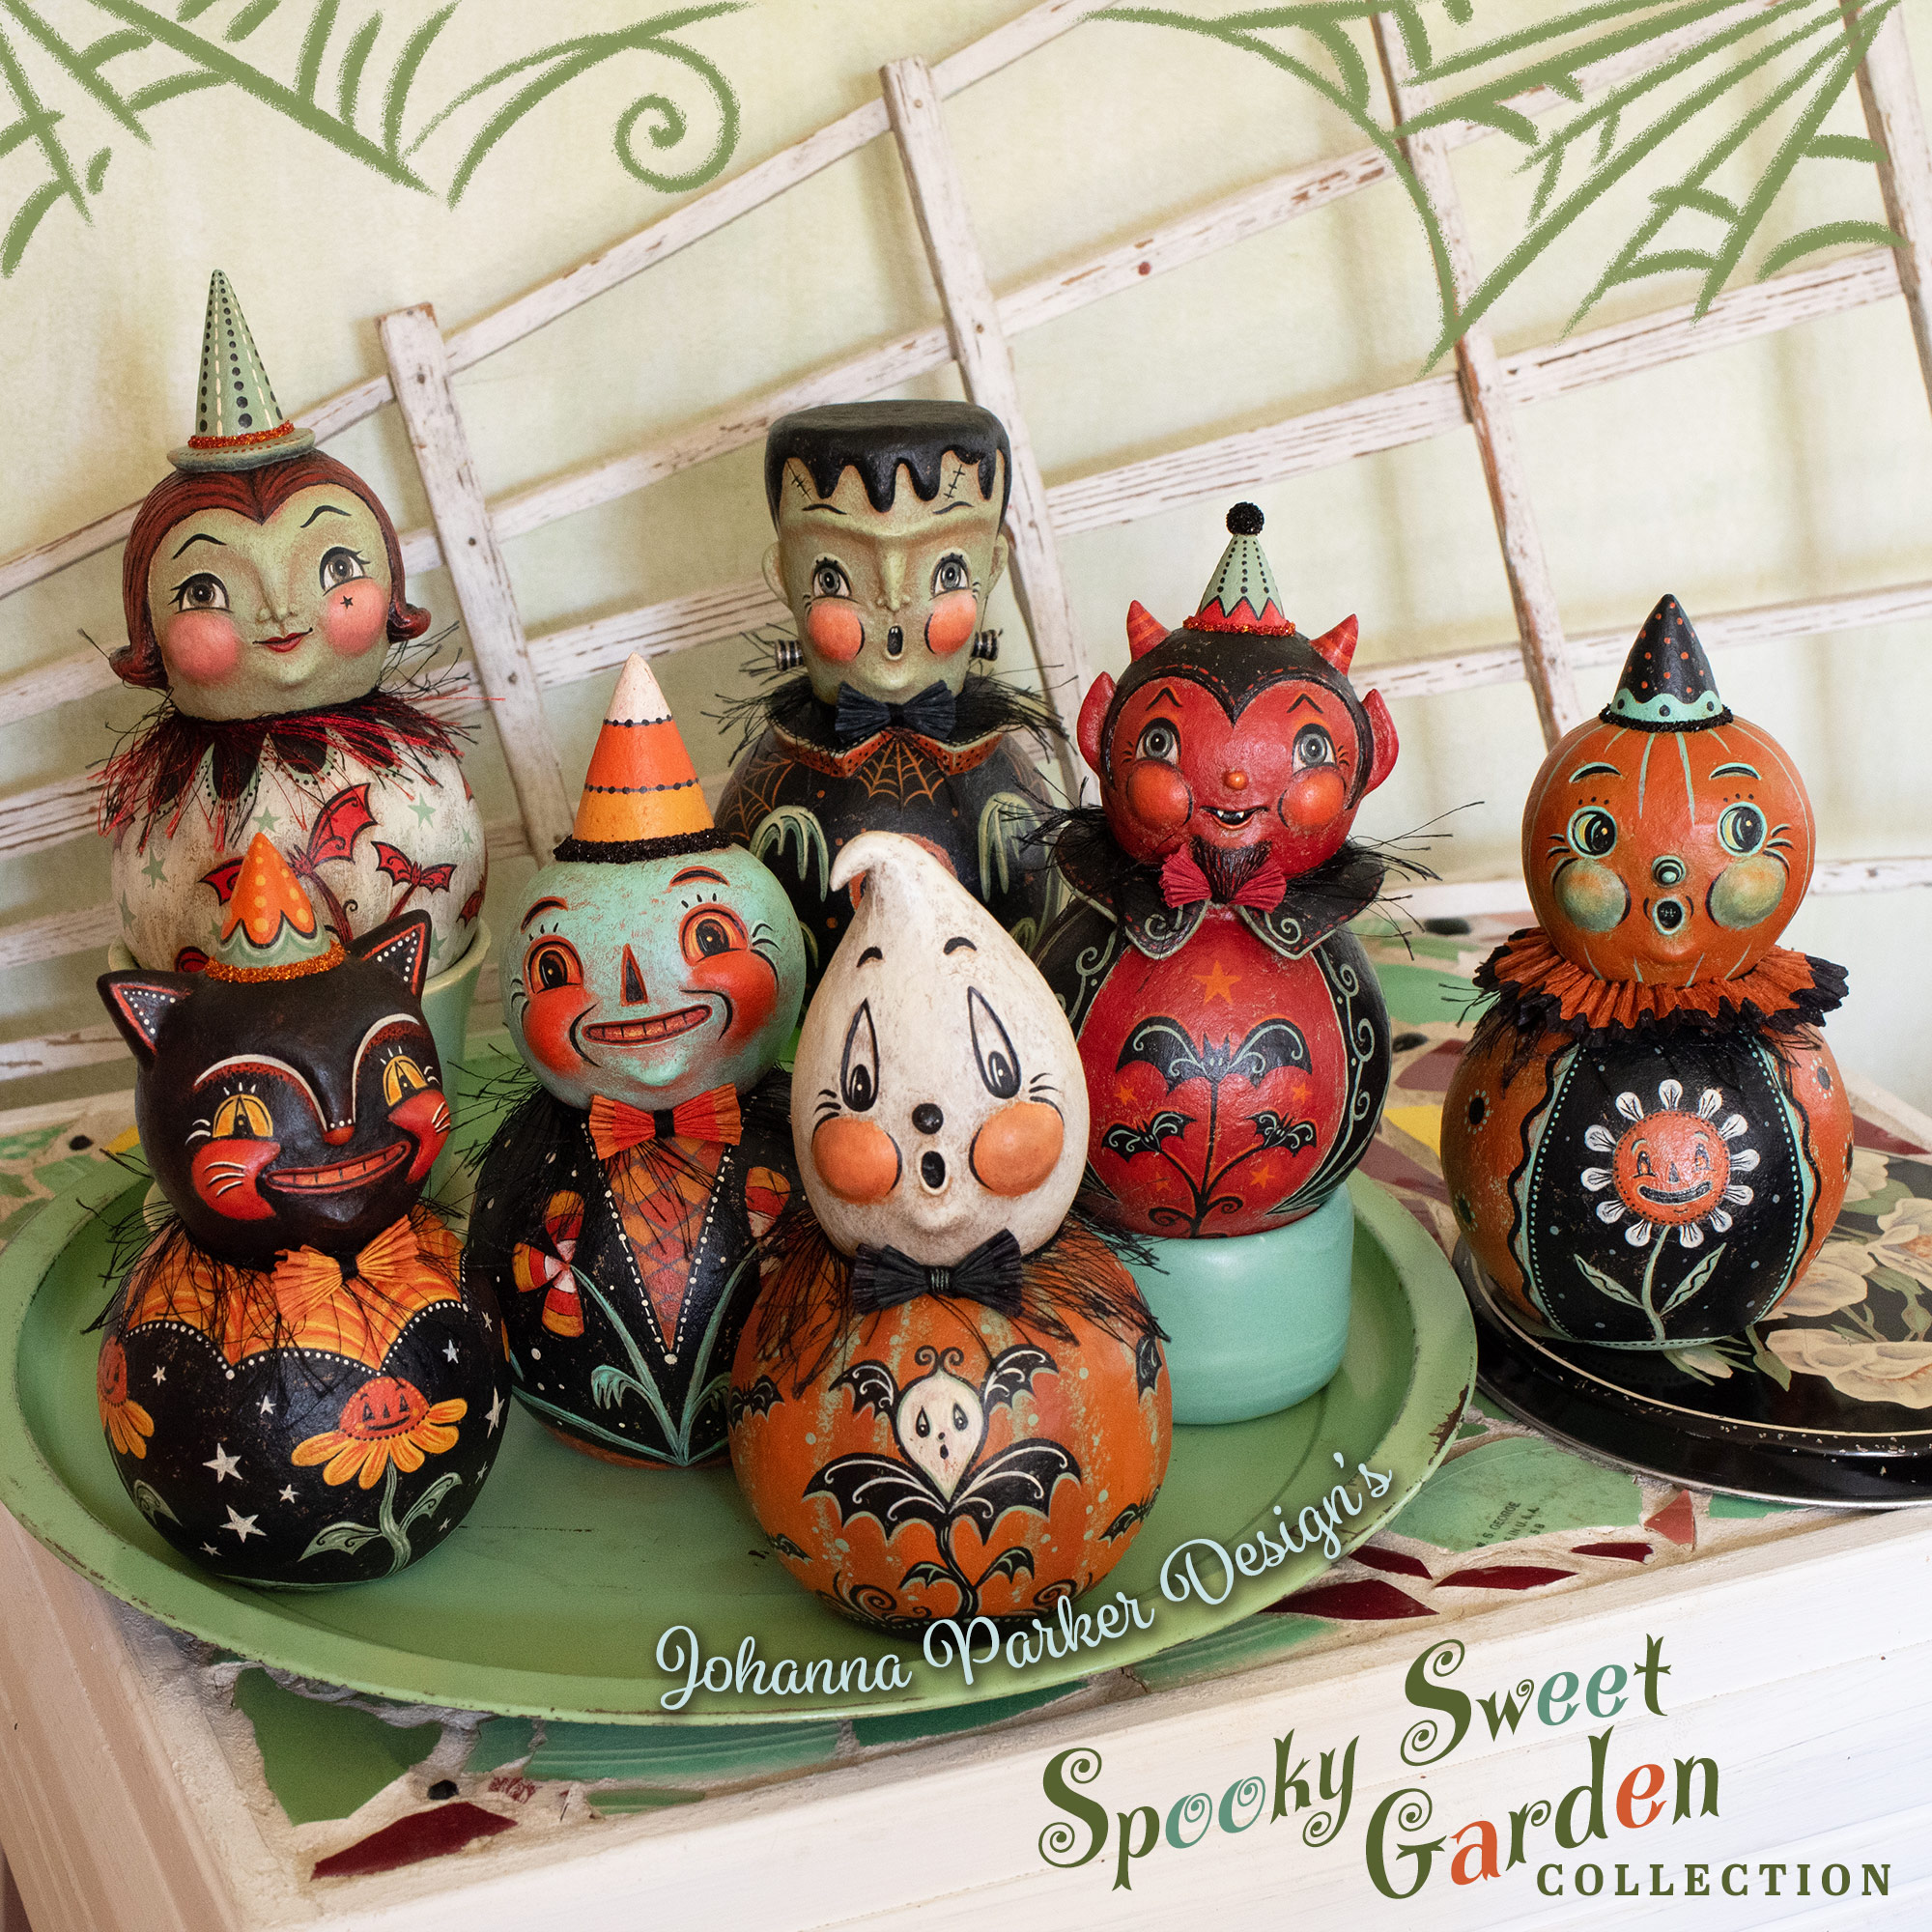 Johanna-Parker-folk-art-Spooky-Sweet-Garden-Collection-frame.jpg